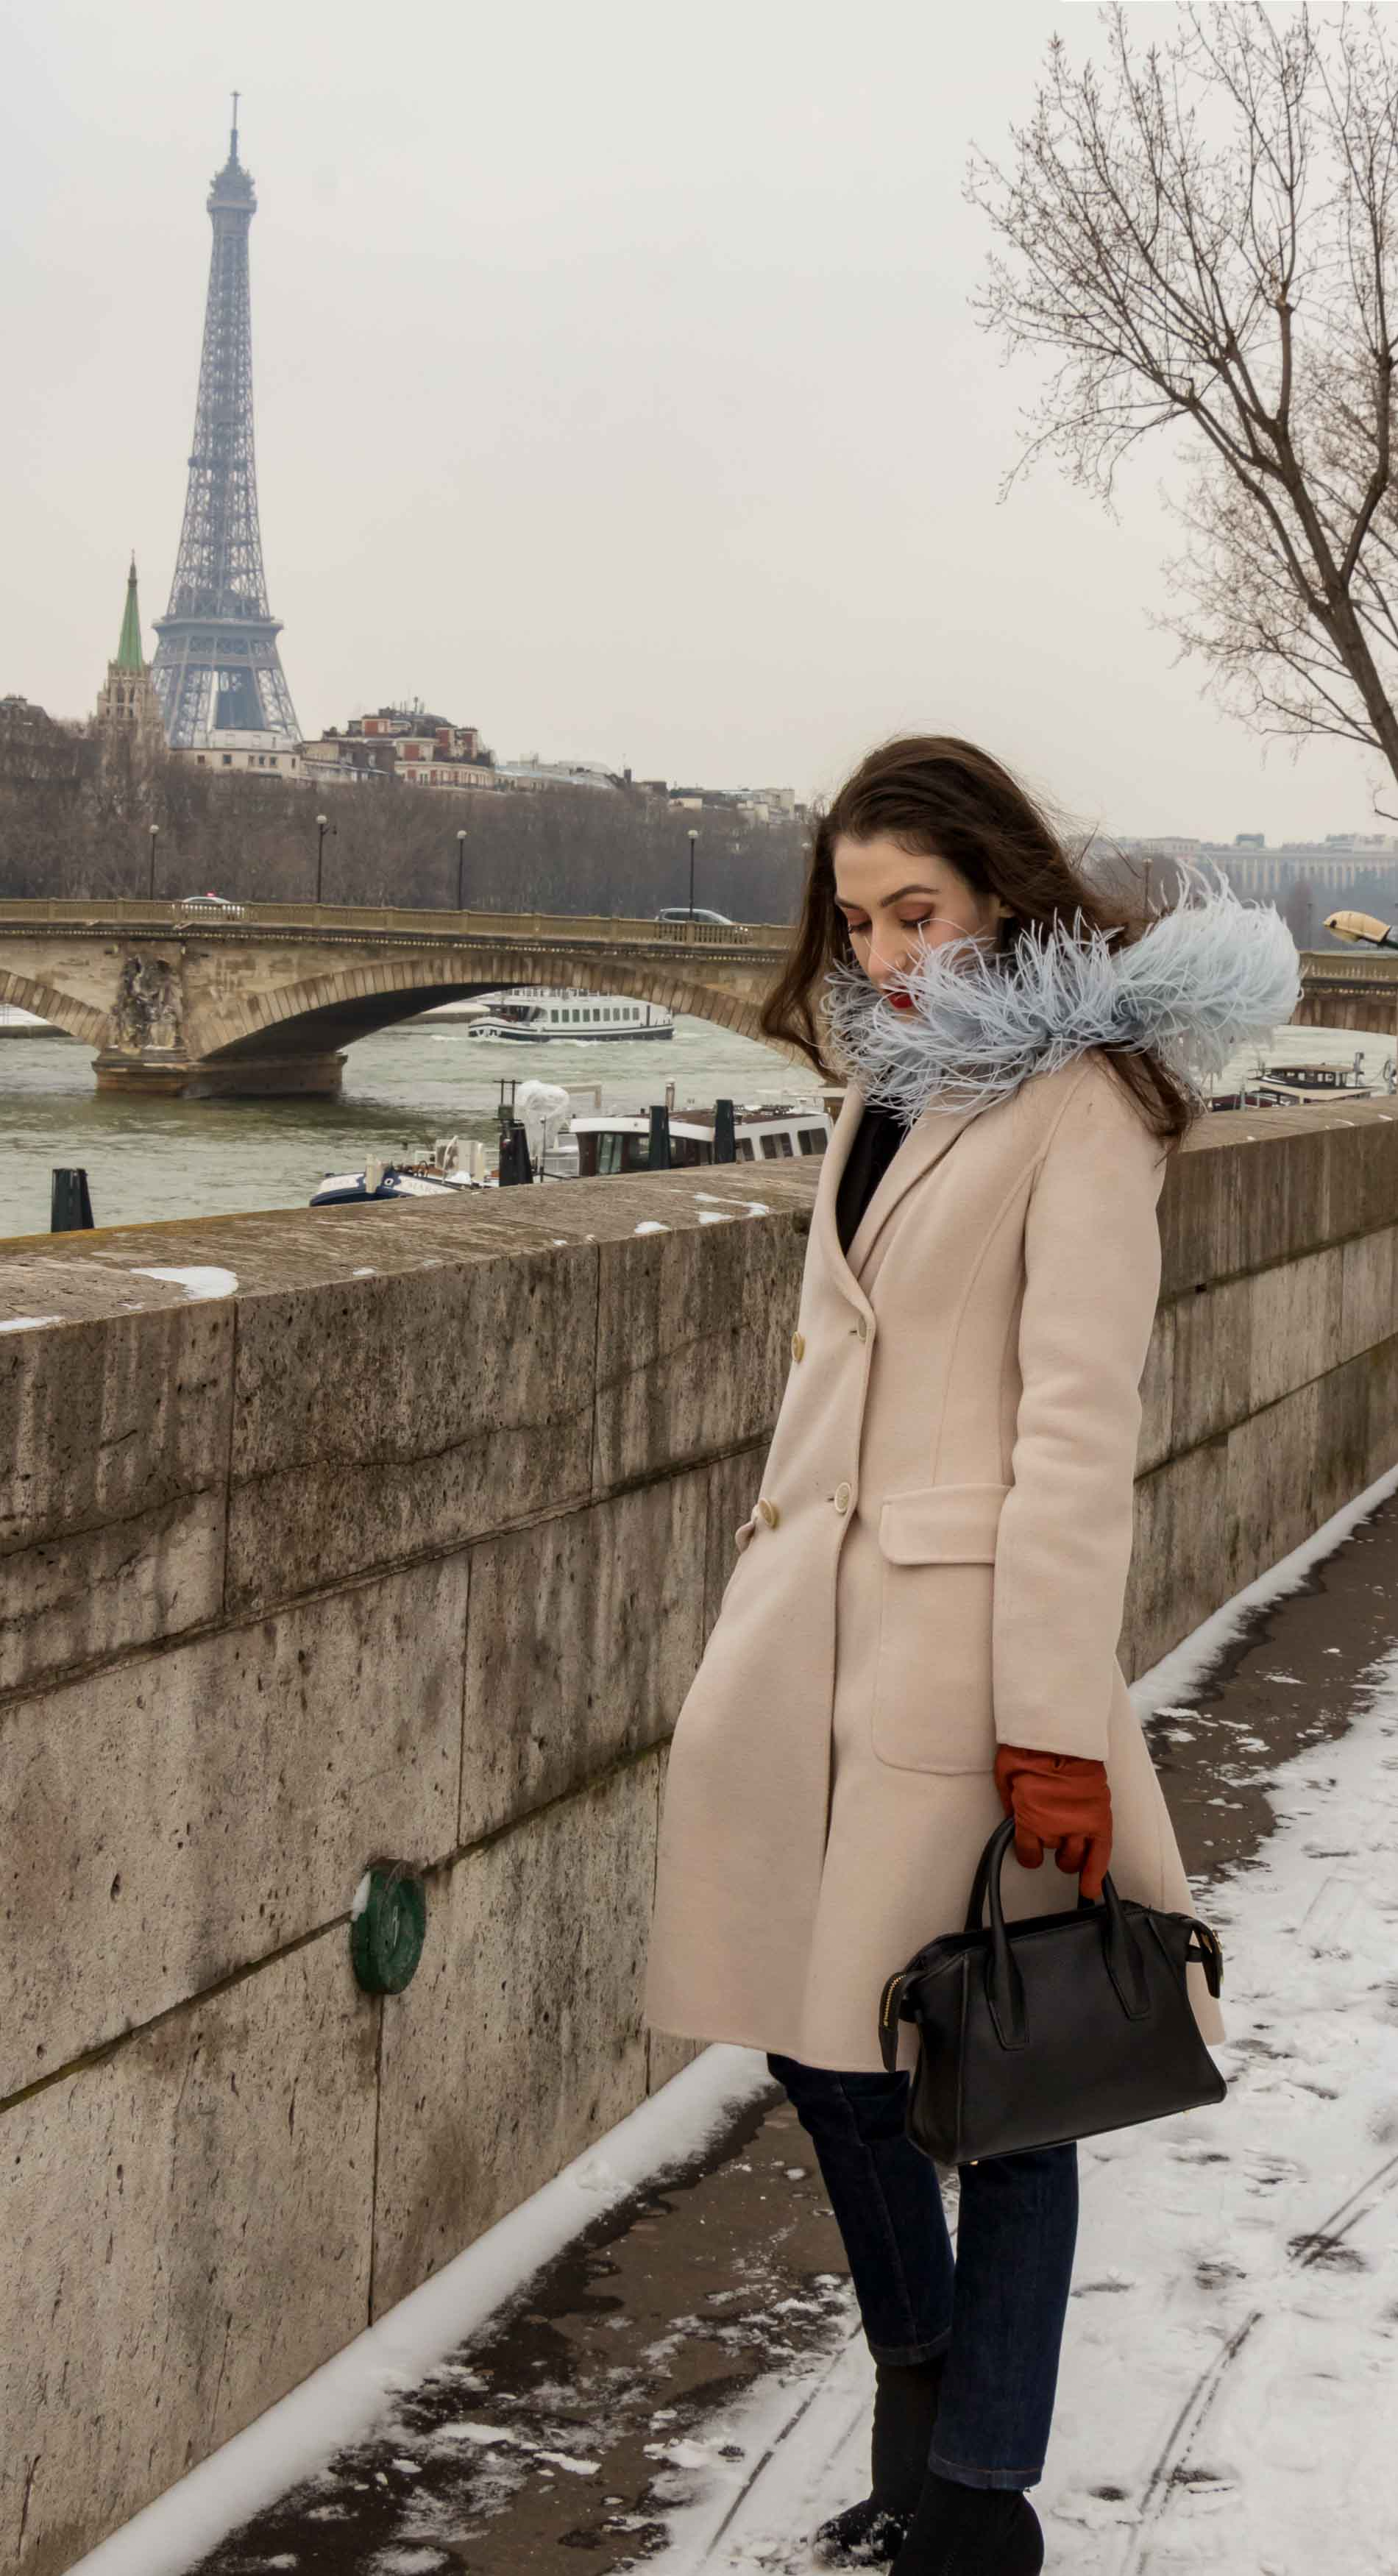 Fashion Blogger Veronika Lipar of Brunette from Wall Street dressed in feathers, Weekend Maxmara coat, dark denim jeans, black sock boots, leather gloves, standing at Pont du Alexandre III in Paris during Paris fashion week autumn winter 2018/19